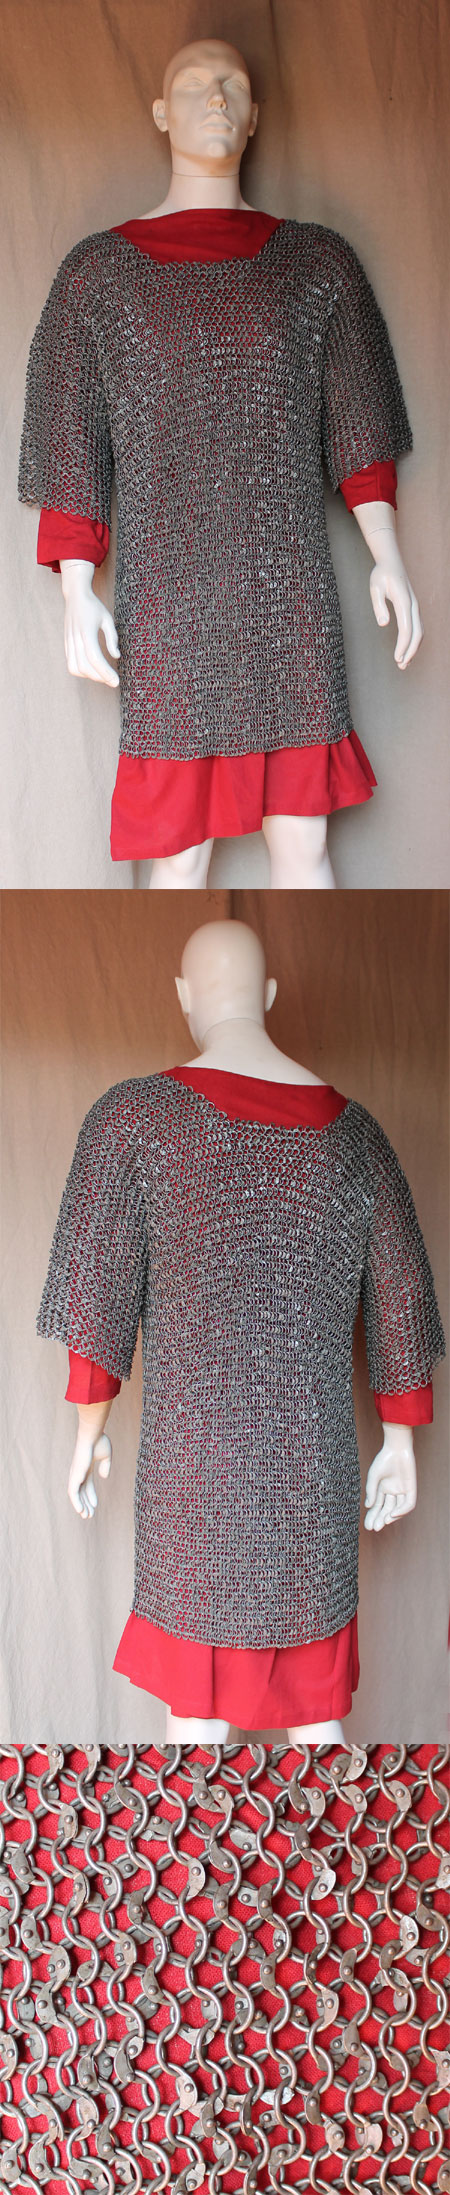 Medieval riveted Chain Mail Shirt 1/2 sleeves